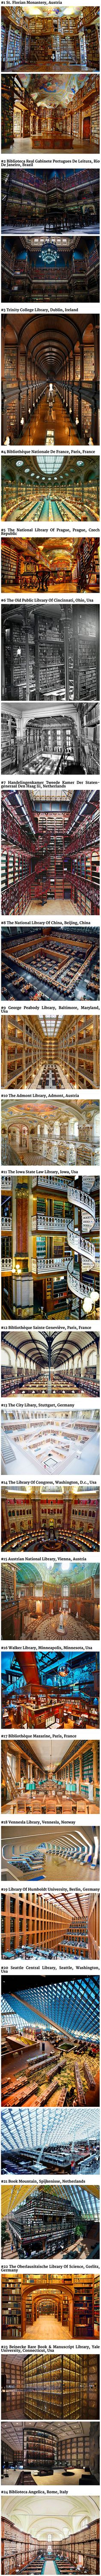 Twenty-four extraordinary libraries from around the world... PLEASE TAKE ME TO ALL OF THEM!